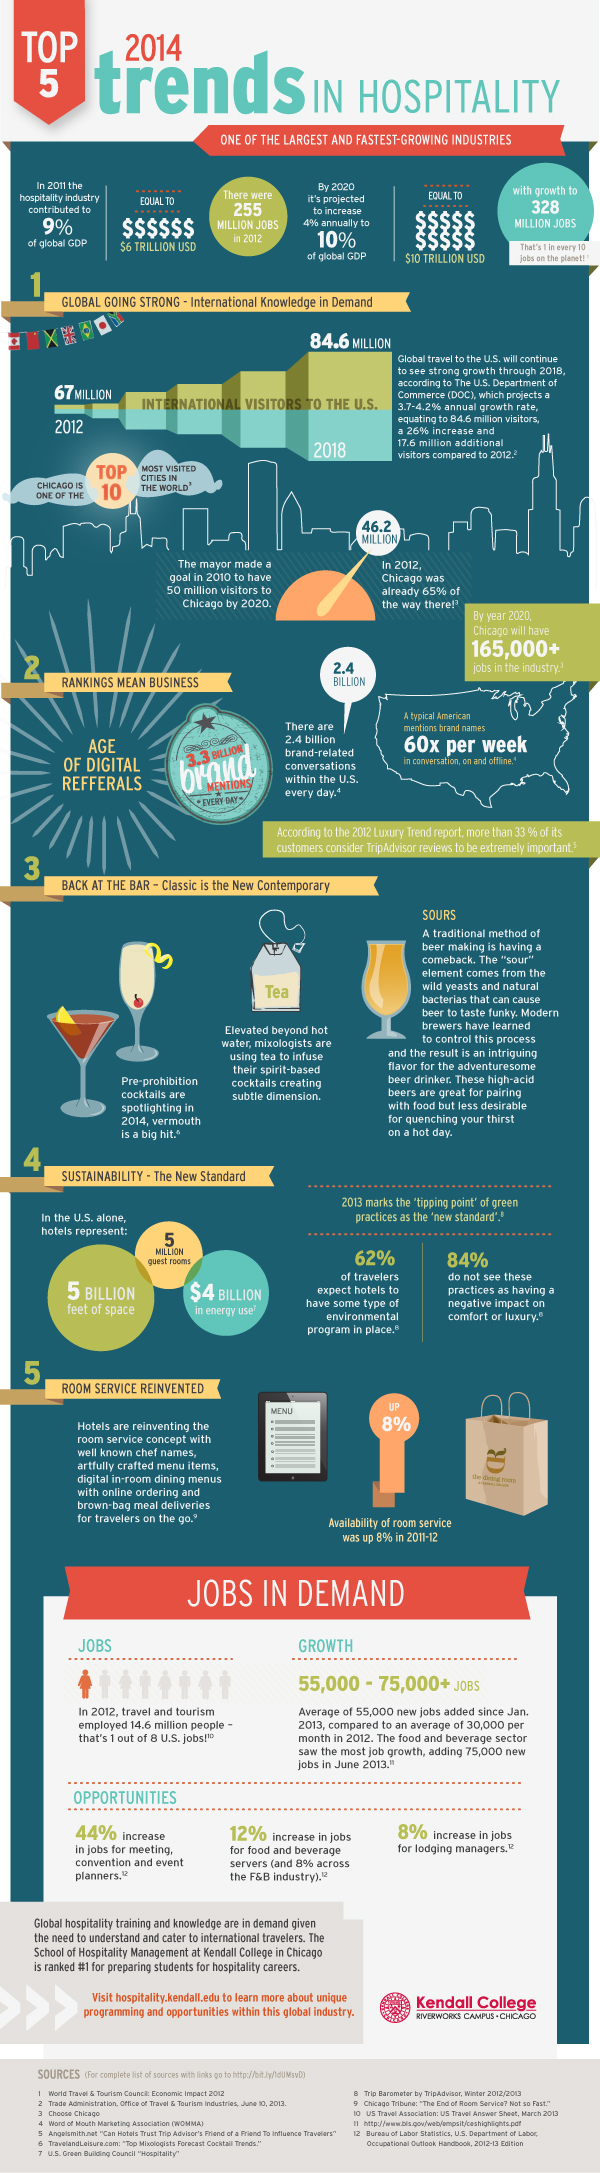 Top Hospitality Trends and Statistics